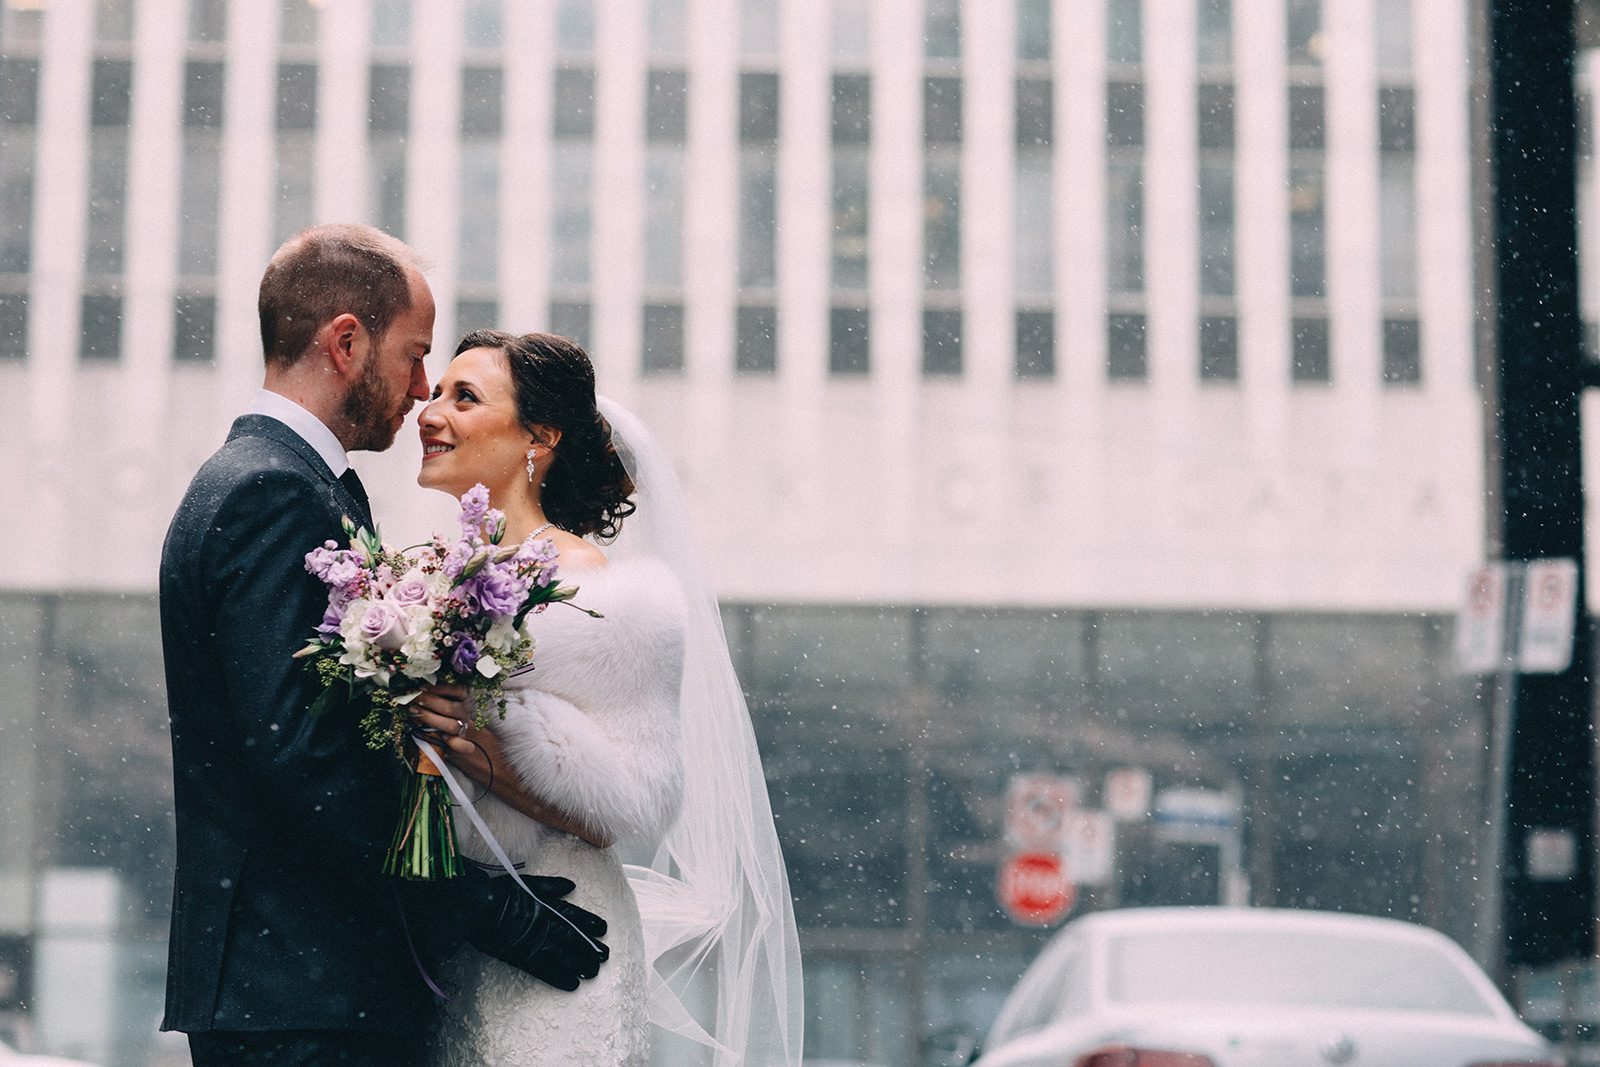 One-King-West-Toronto-wedding-photography_Sam-Wong-of-Visual-Cravings_KnR-18